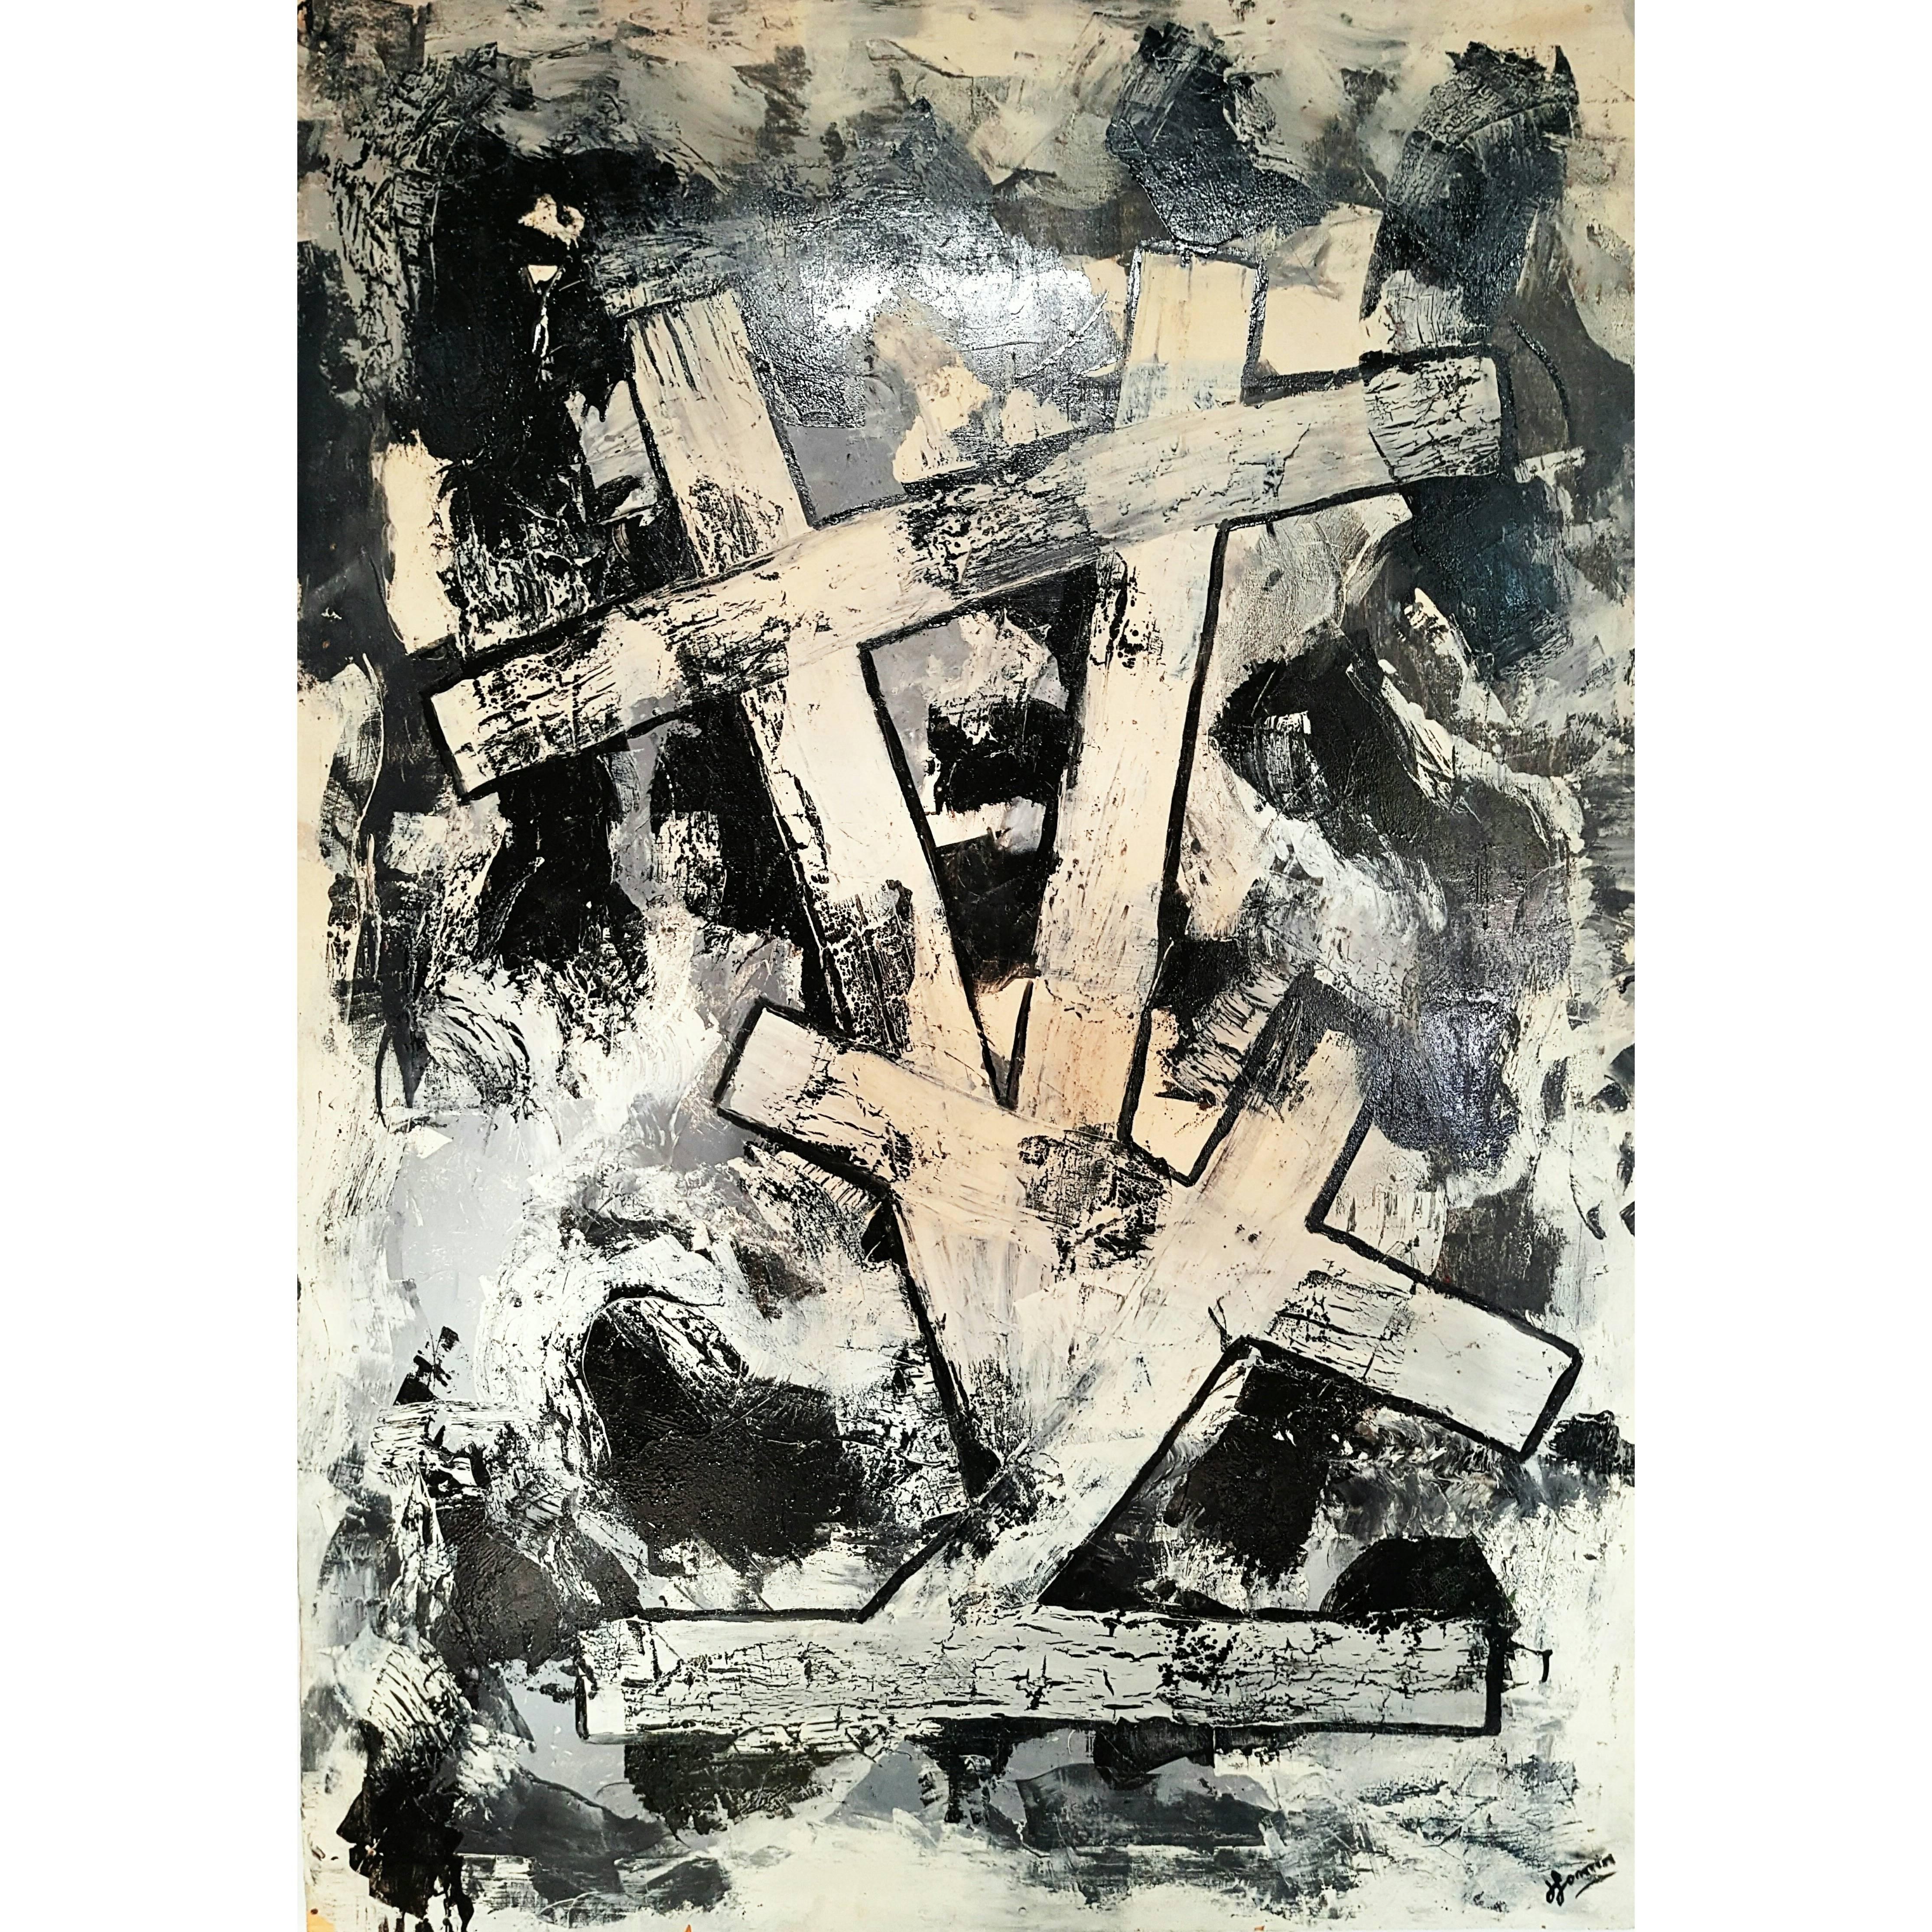 Large Brutalist Abstract Painting on Wood, Signed, France 1990s